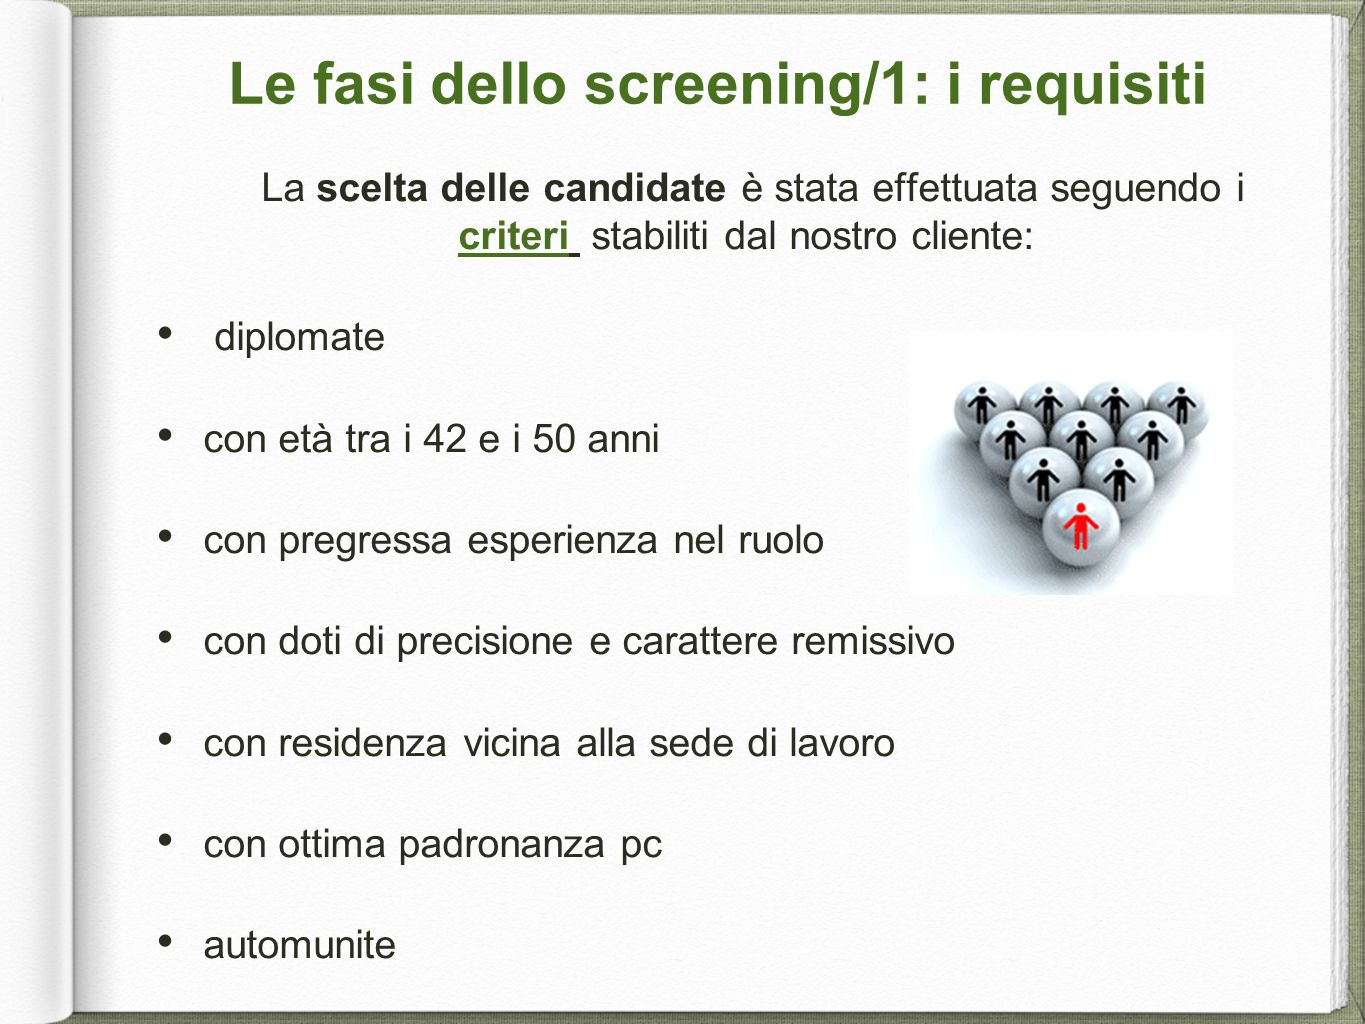 Le fasi dello screening/1: i requisiti